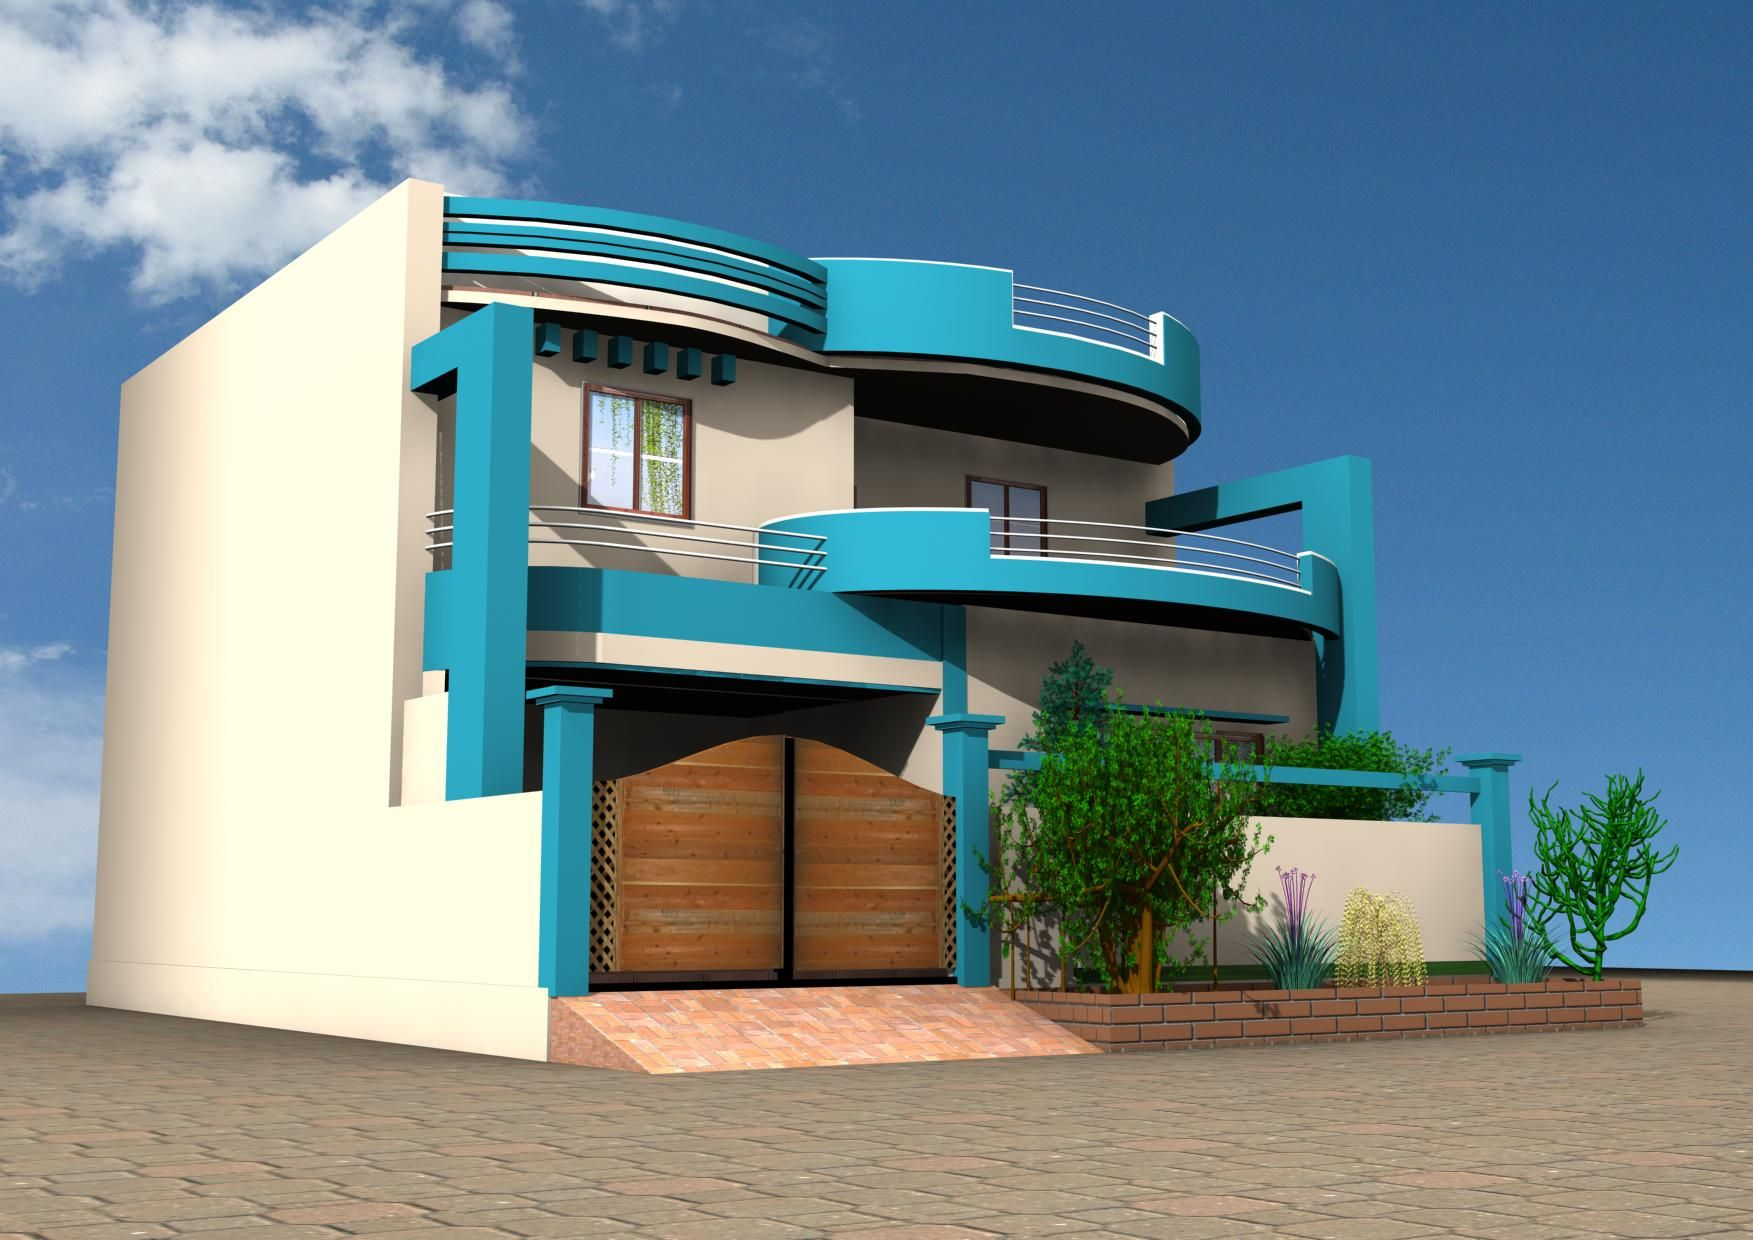 3d home design images hd 1080p for Exterior design program